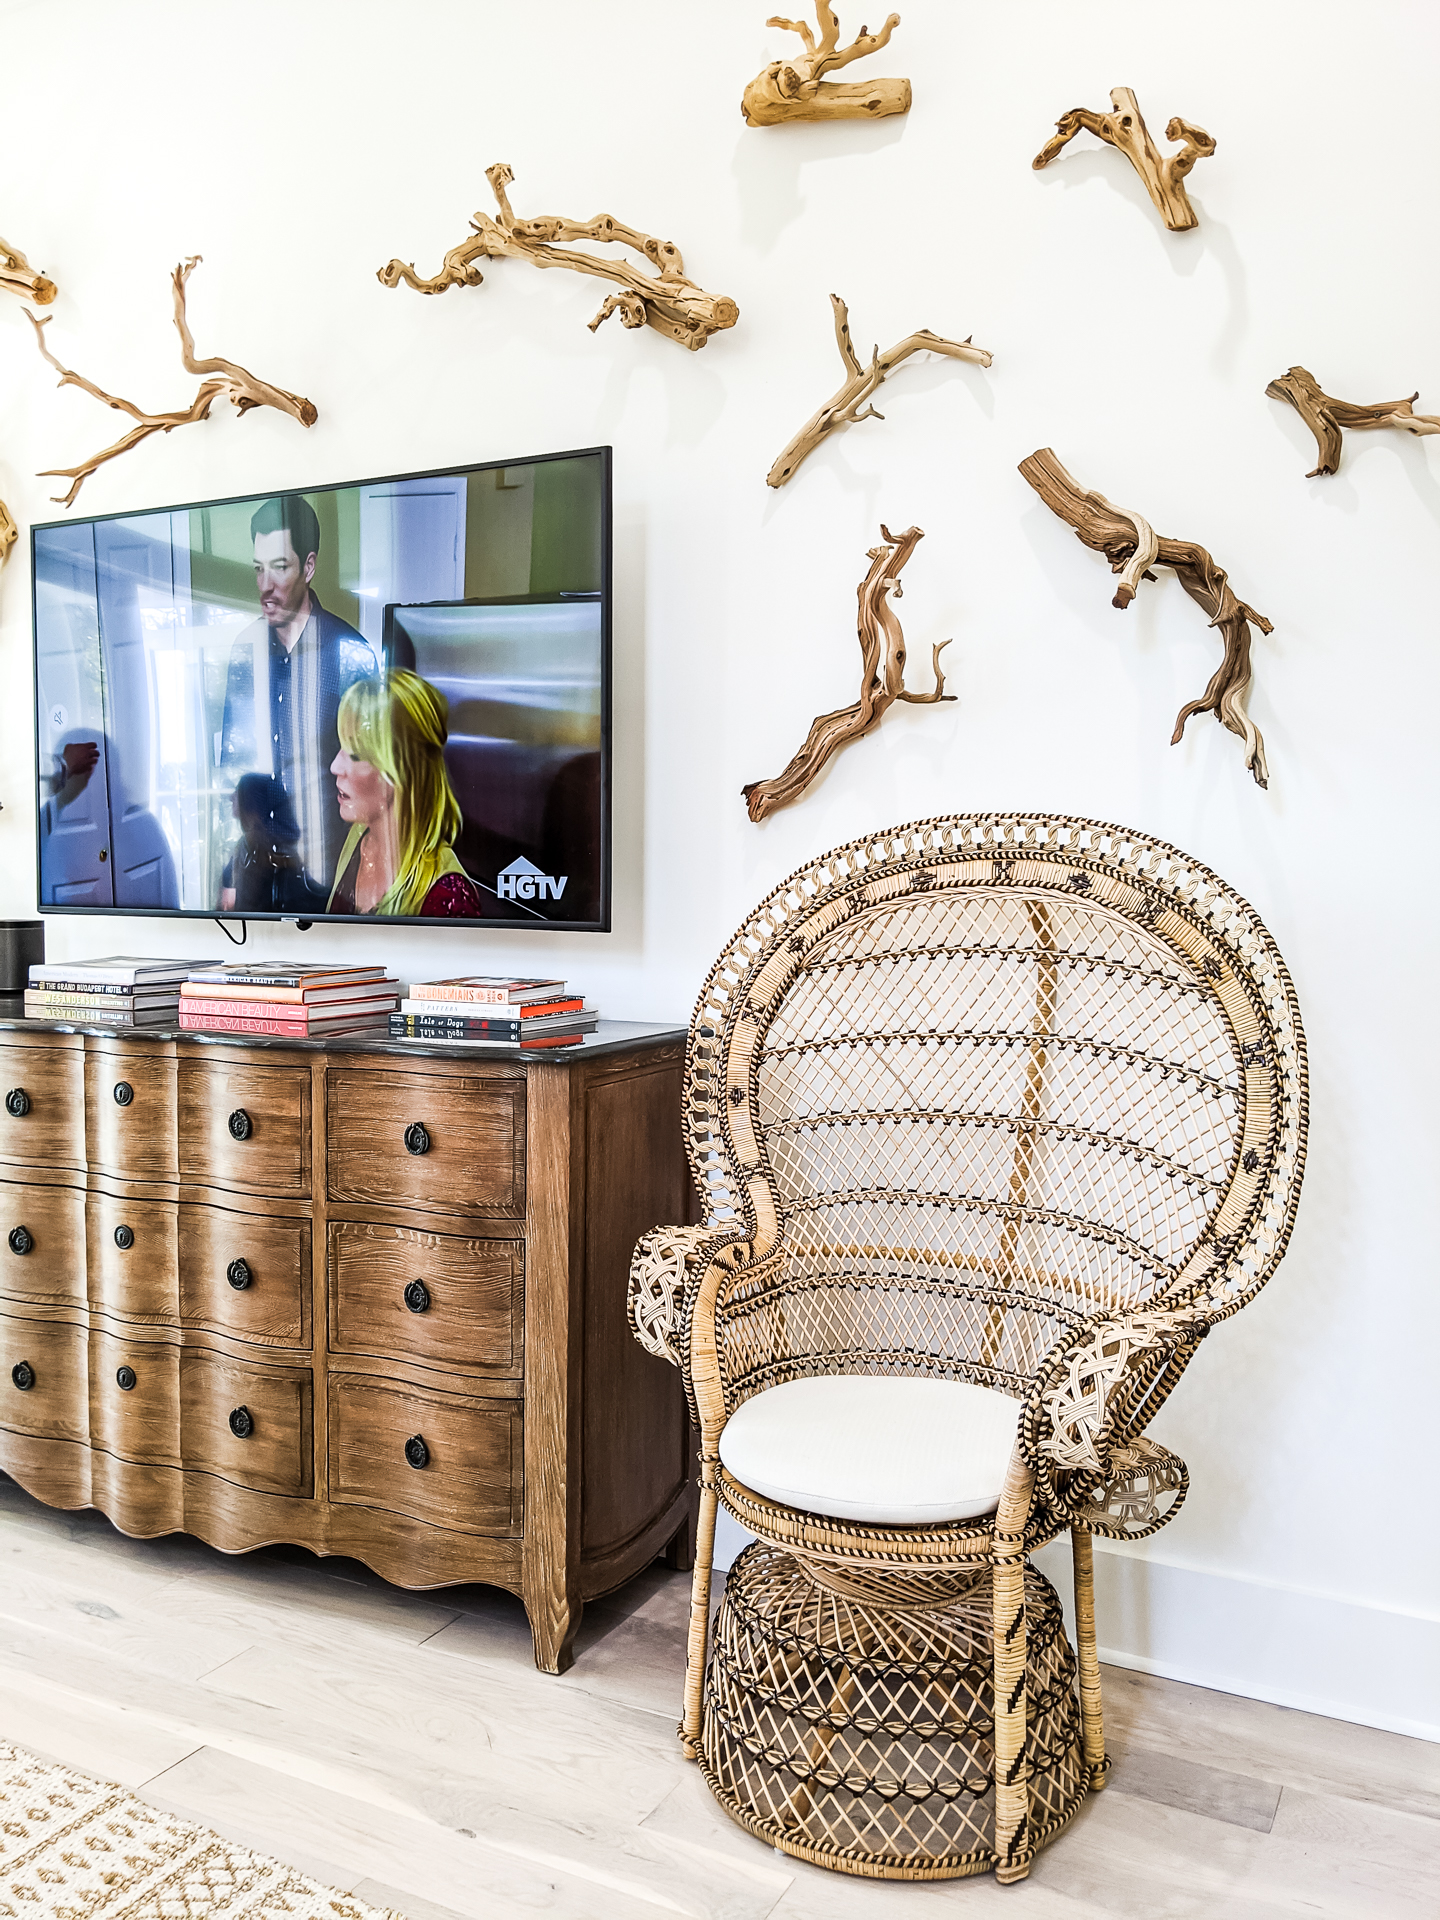 driftwood accent wall installation art - wicker chairs